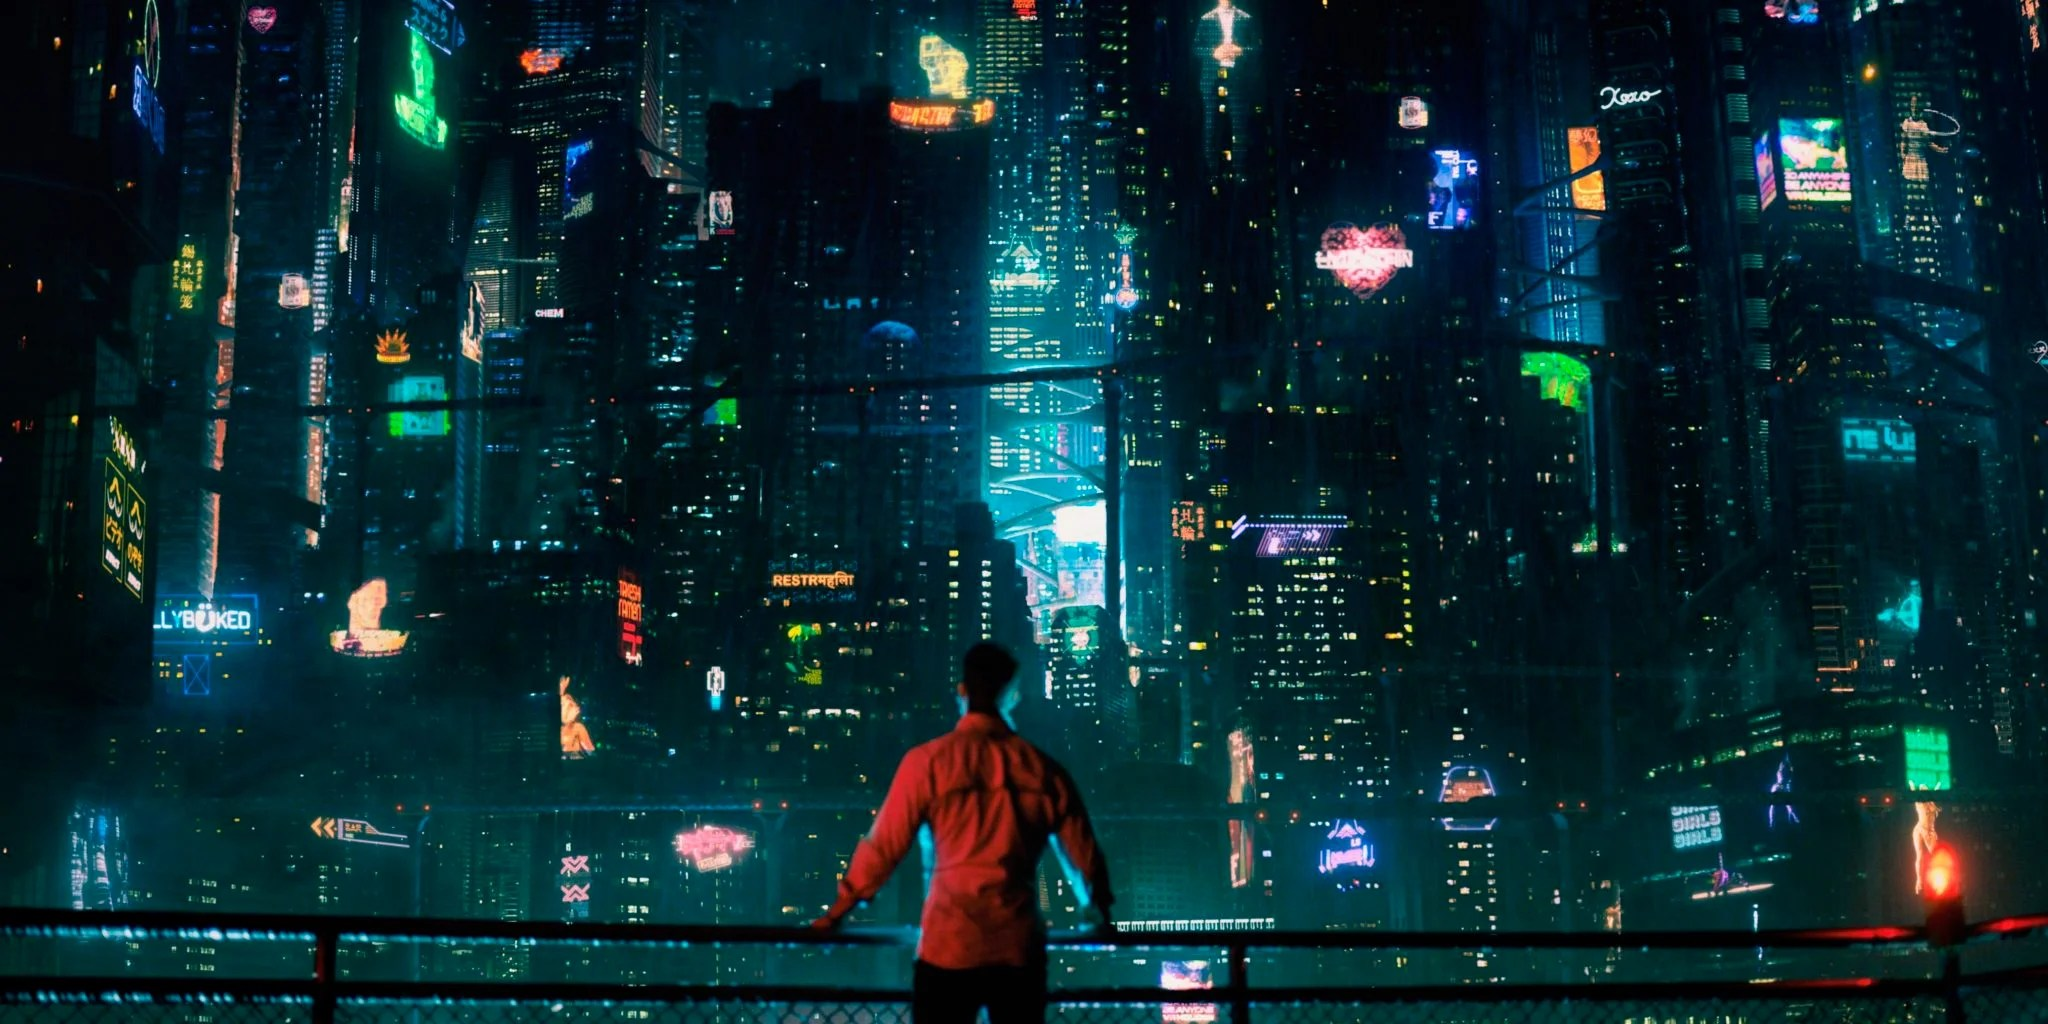 Altered Carbon Release Date Trailers And Cast Of The Next